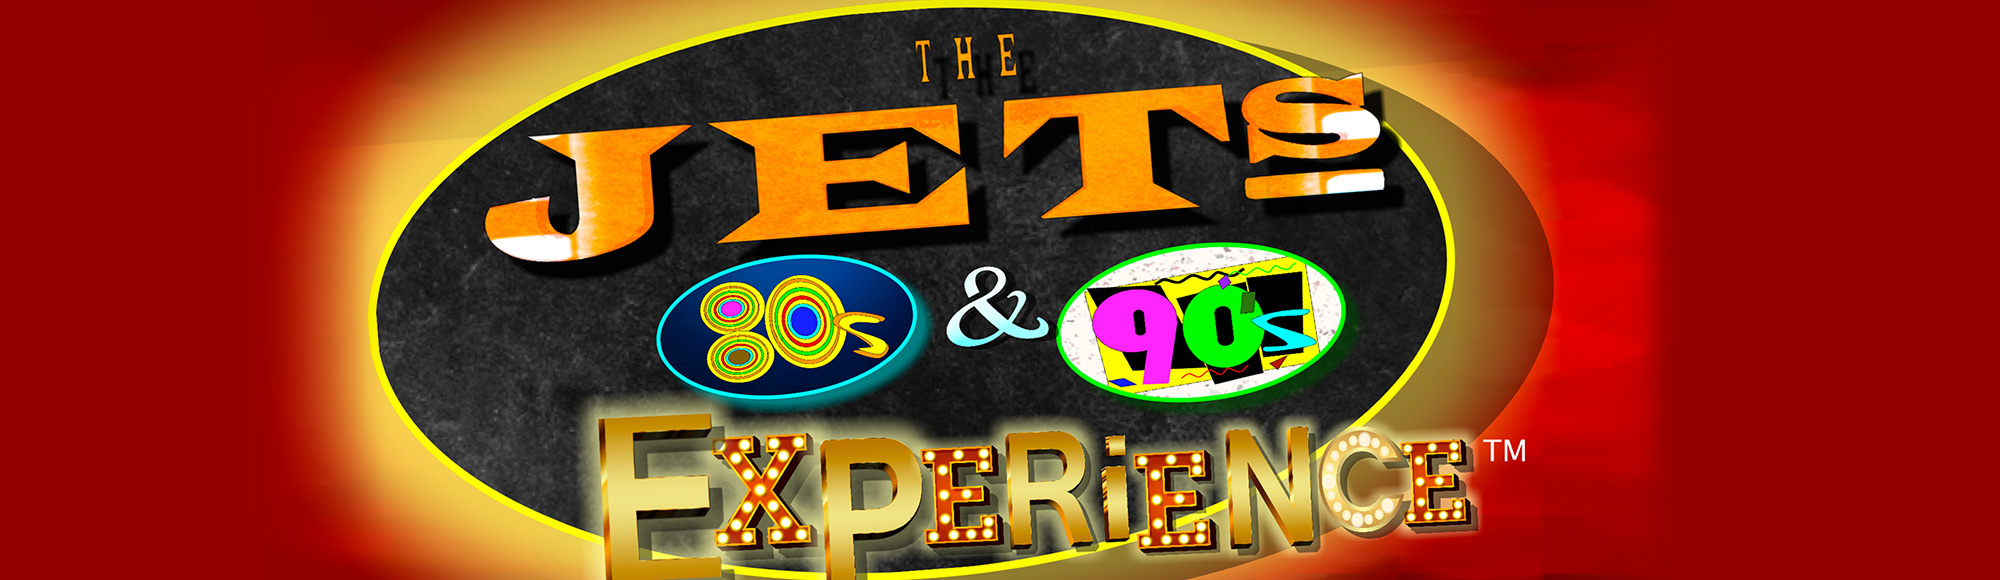 THE JETS 80's & 90's Experience! show